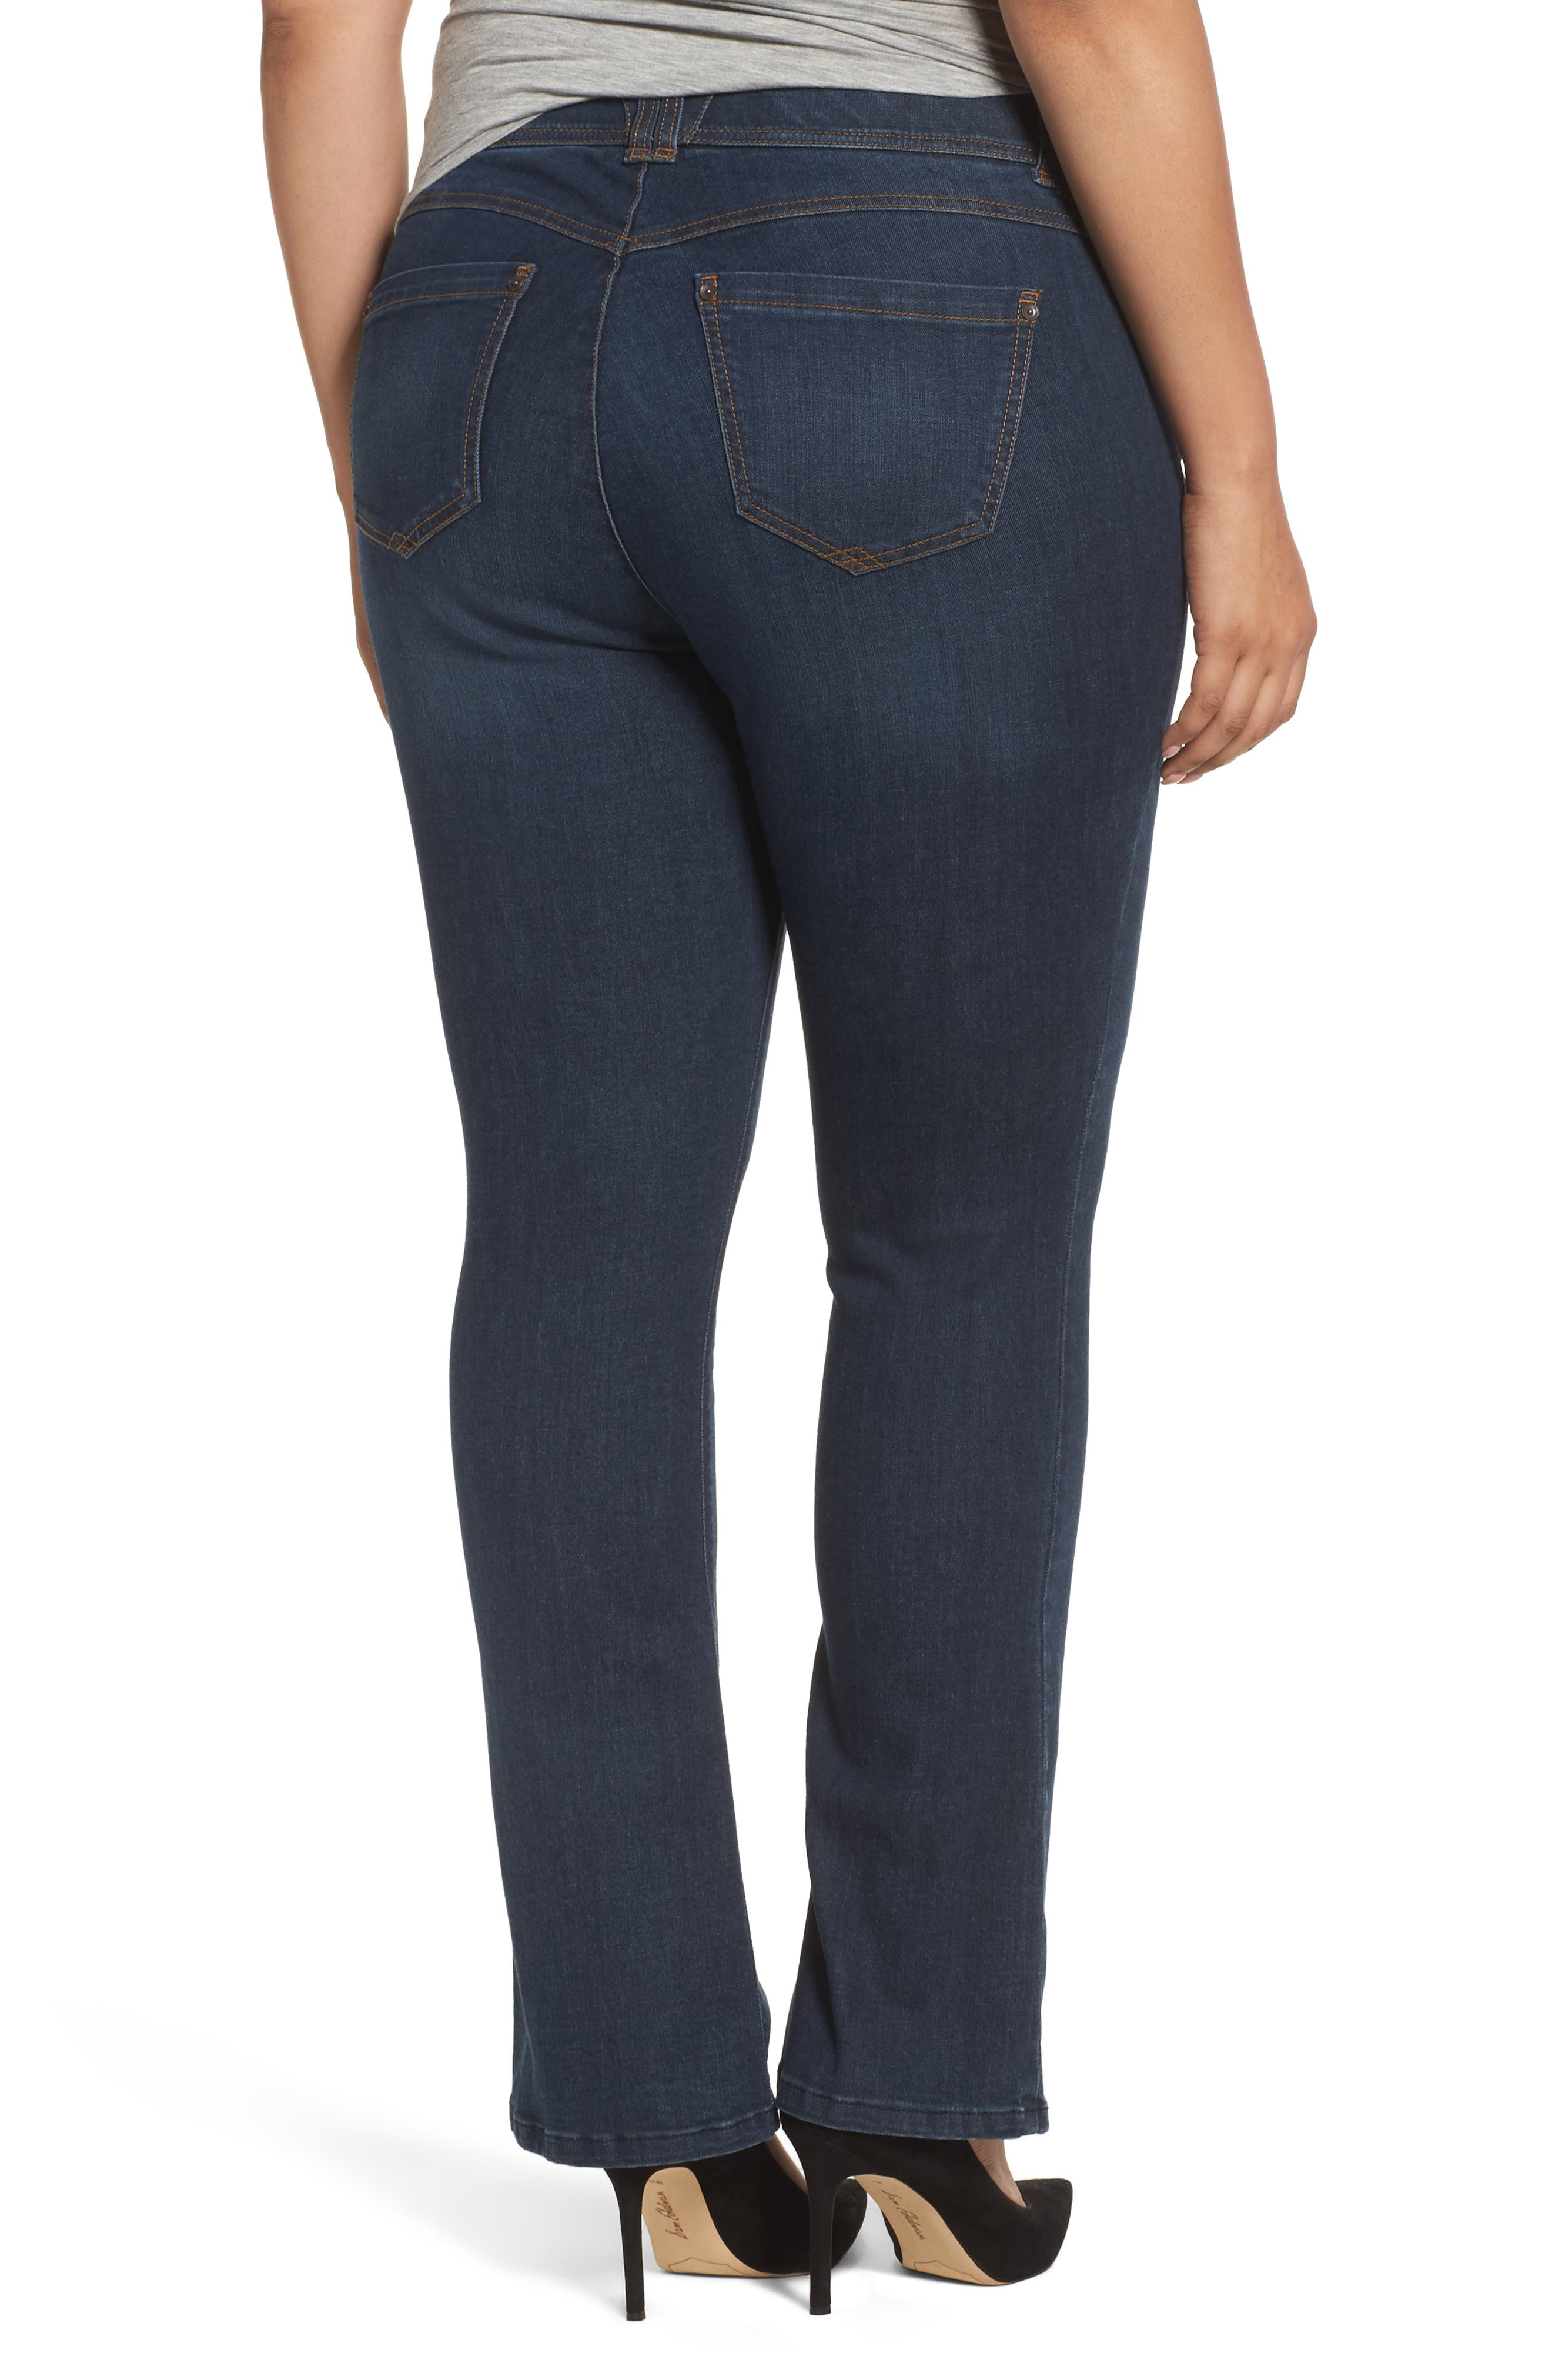 Ab-solution Itty Bitty Bootcut Jeans,                             Alternate thumbnail 2, color,                             420